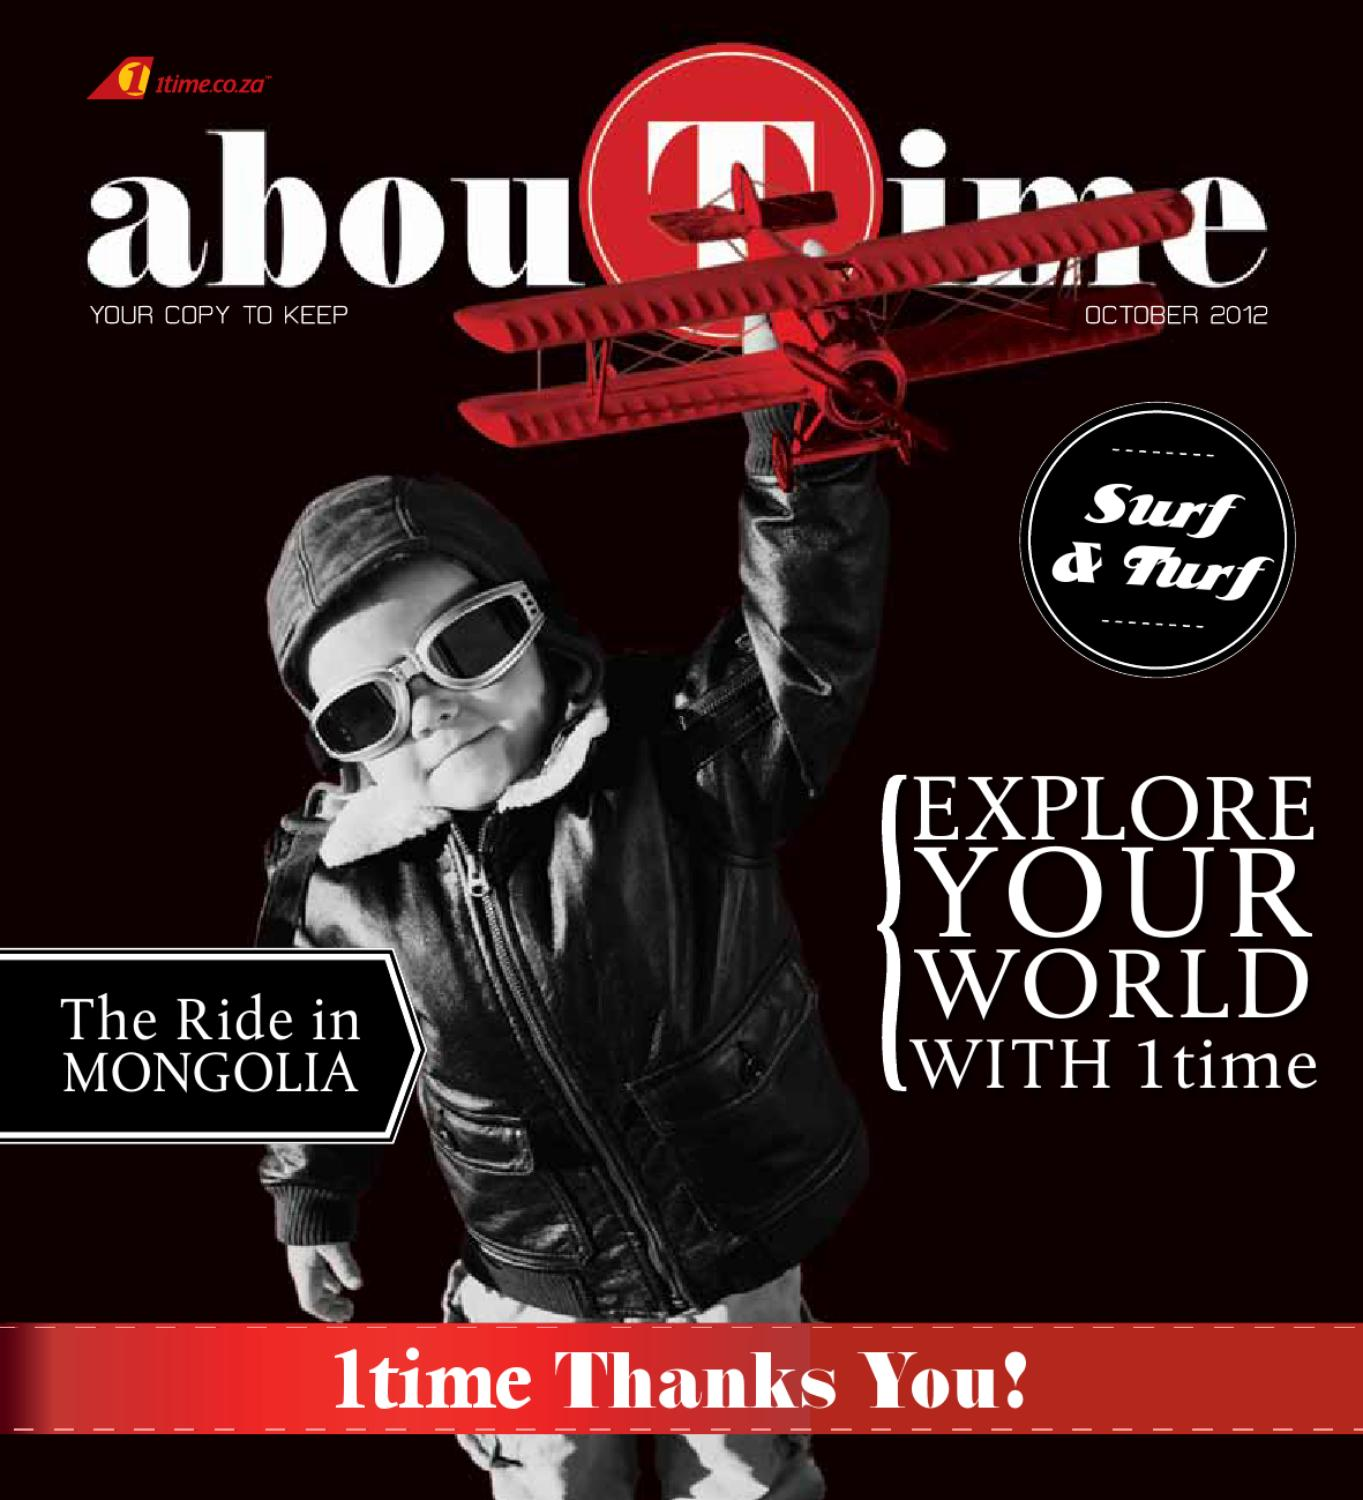 abouTime October 2012 by Brett Rothmann - issuu